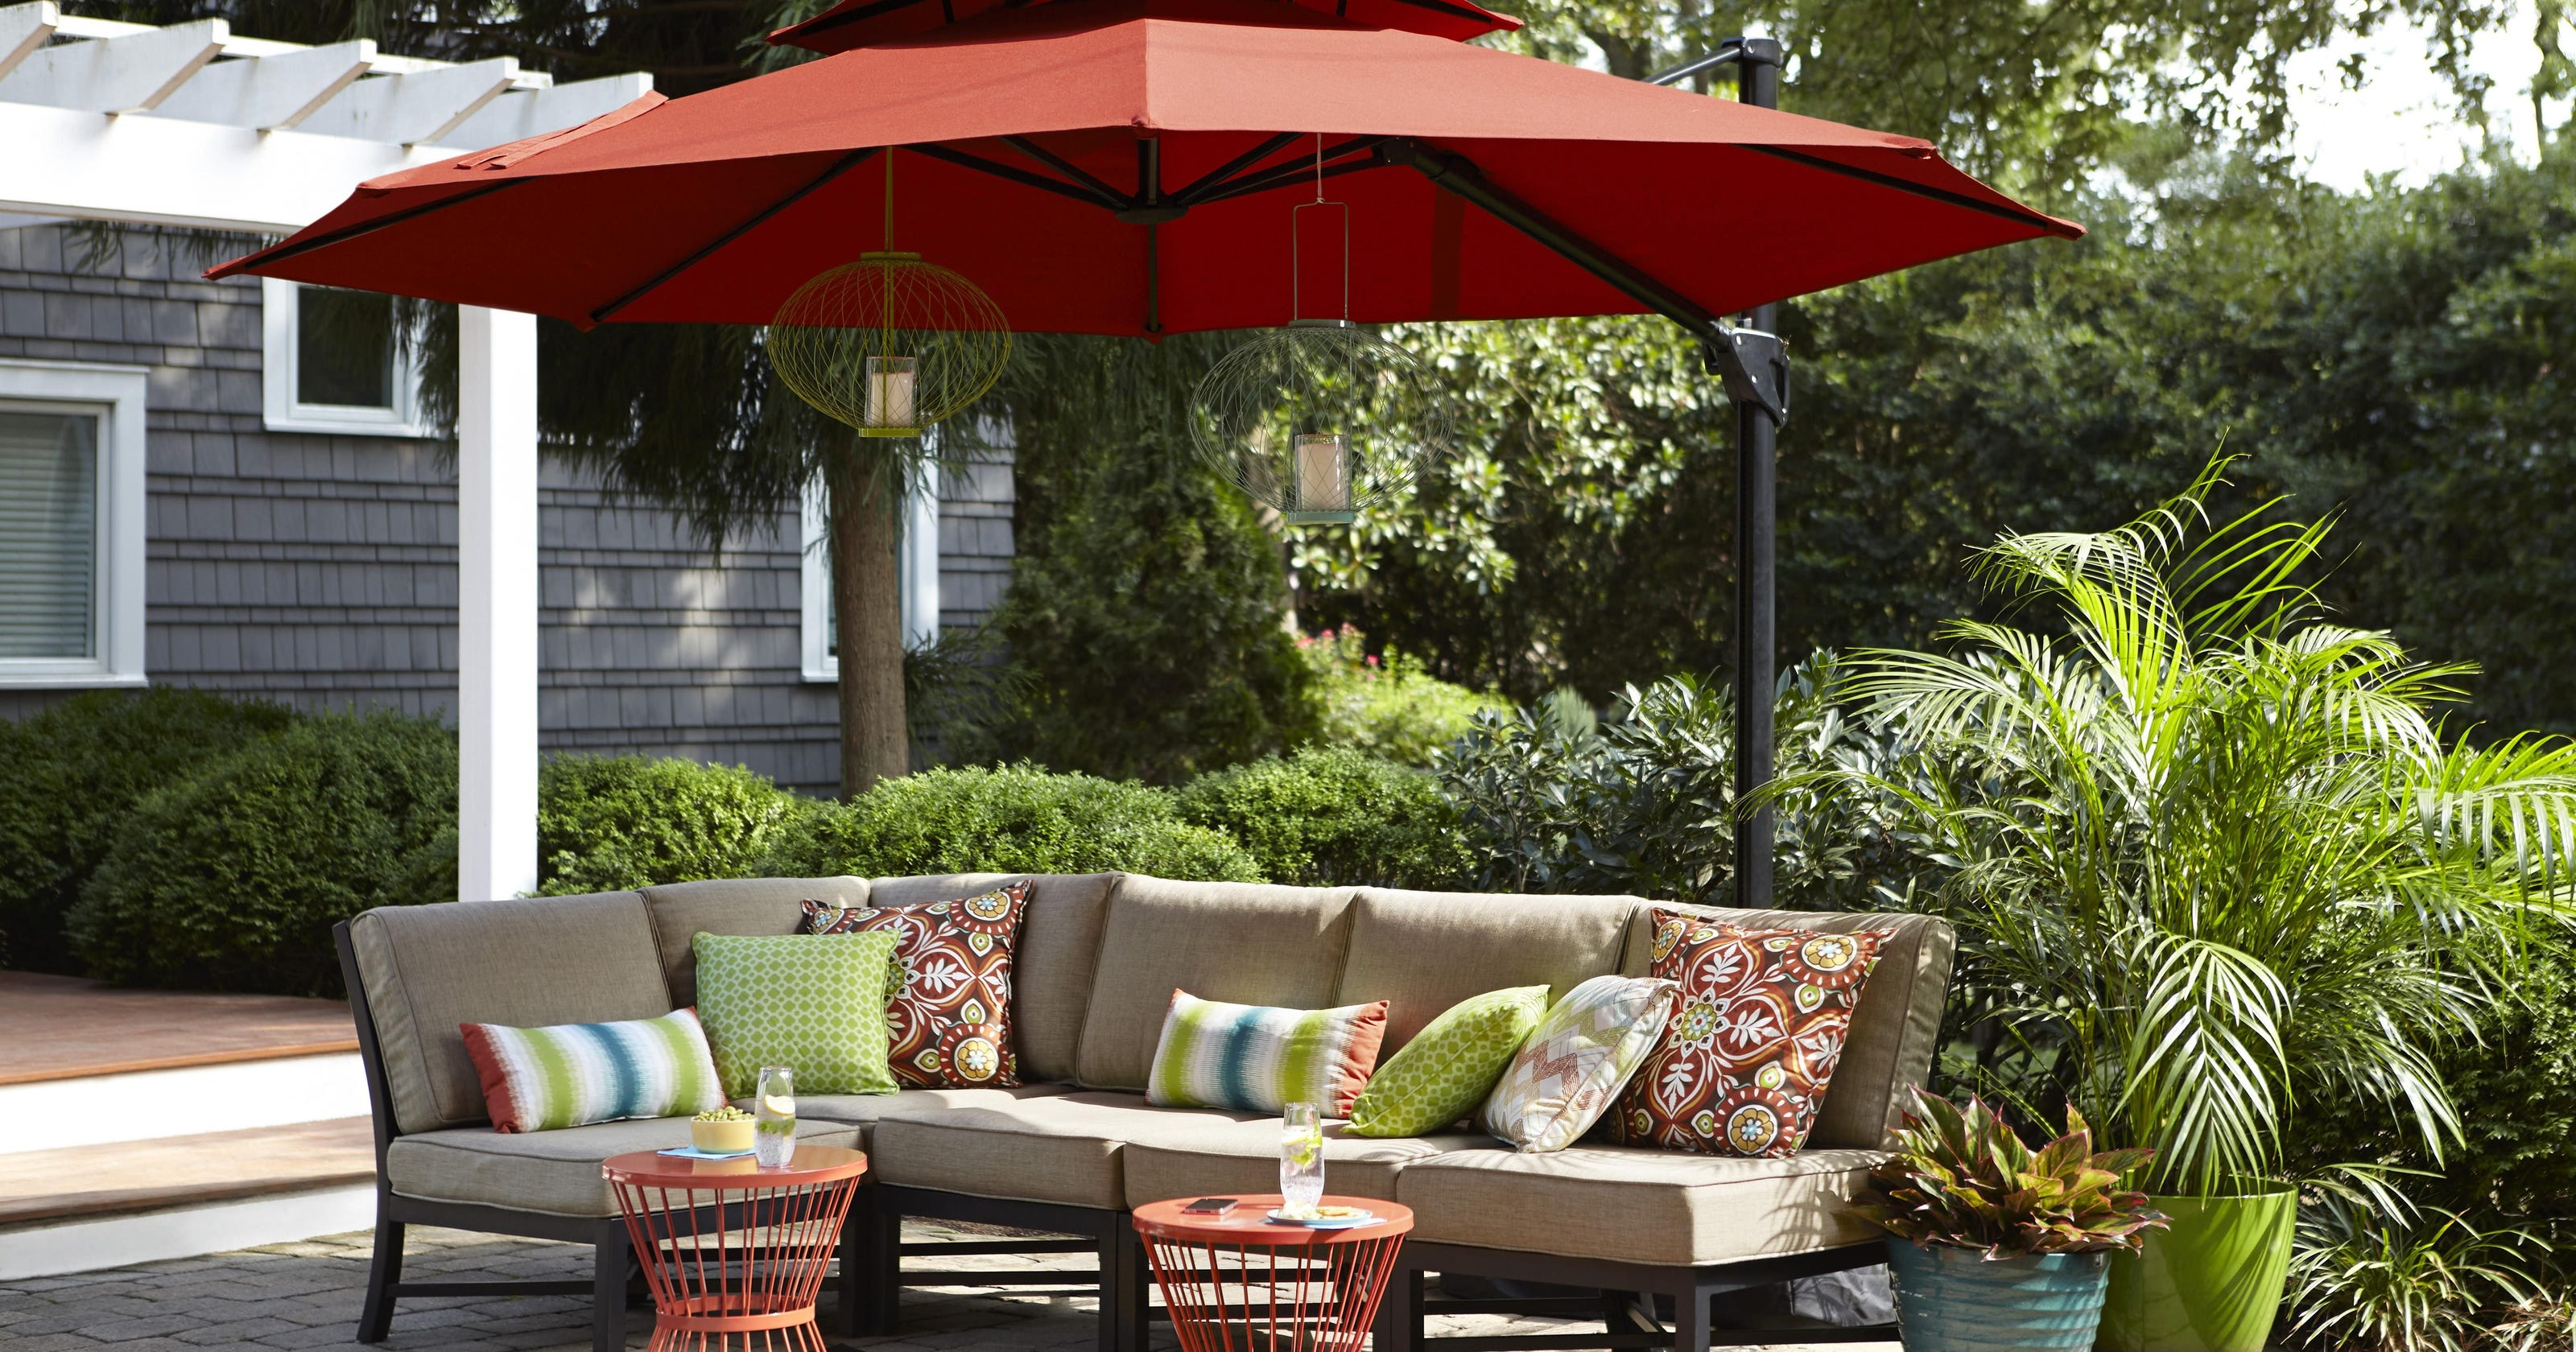 Add a room with your porch, deck or patio.